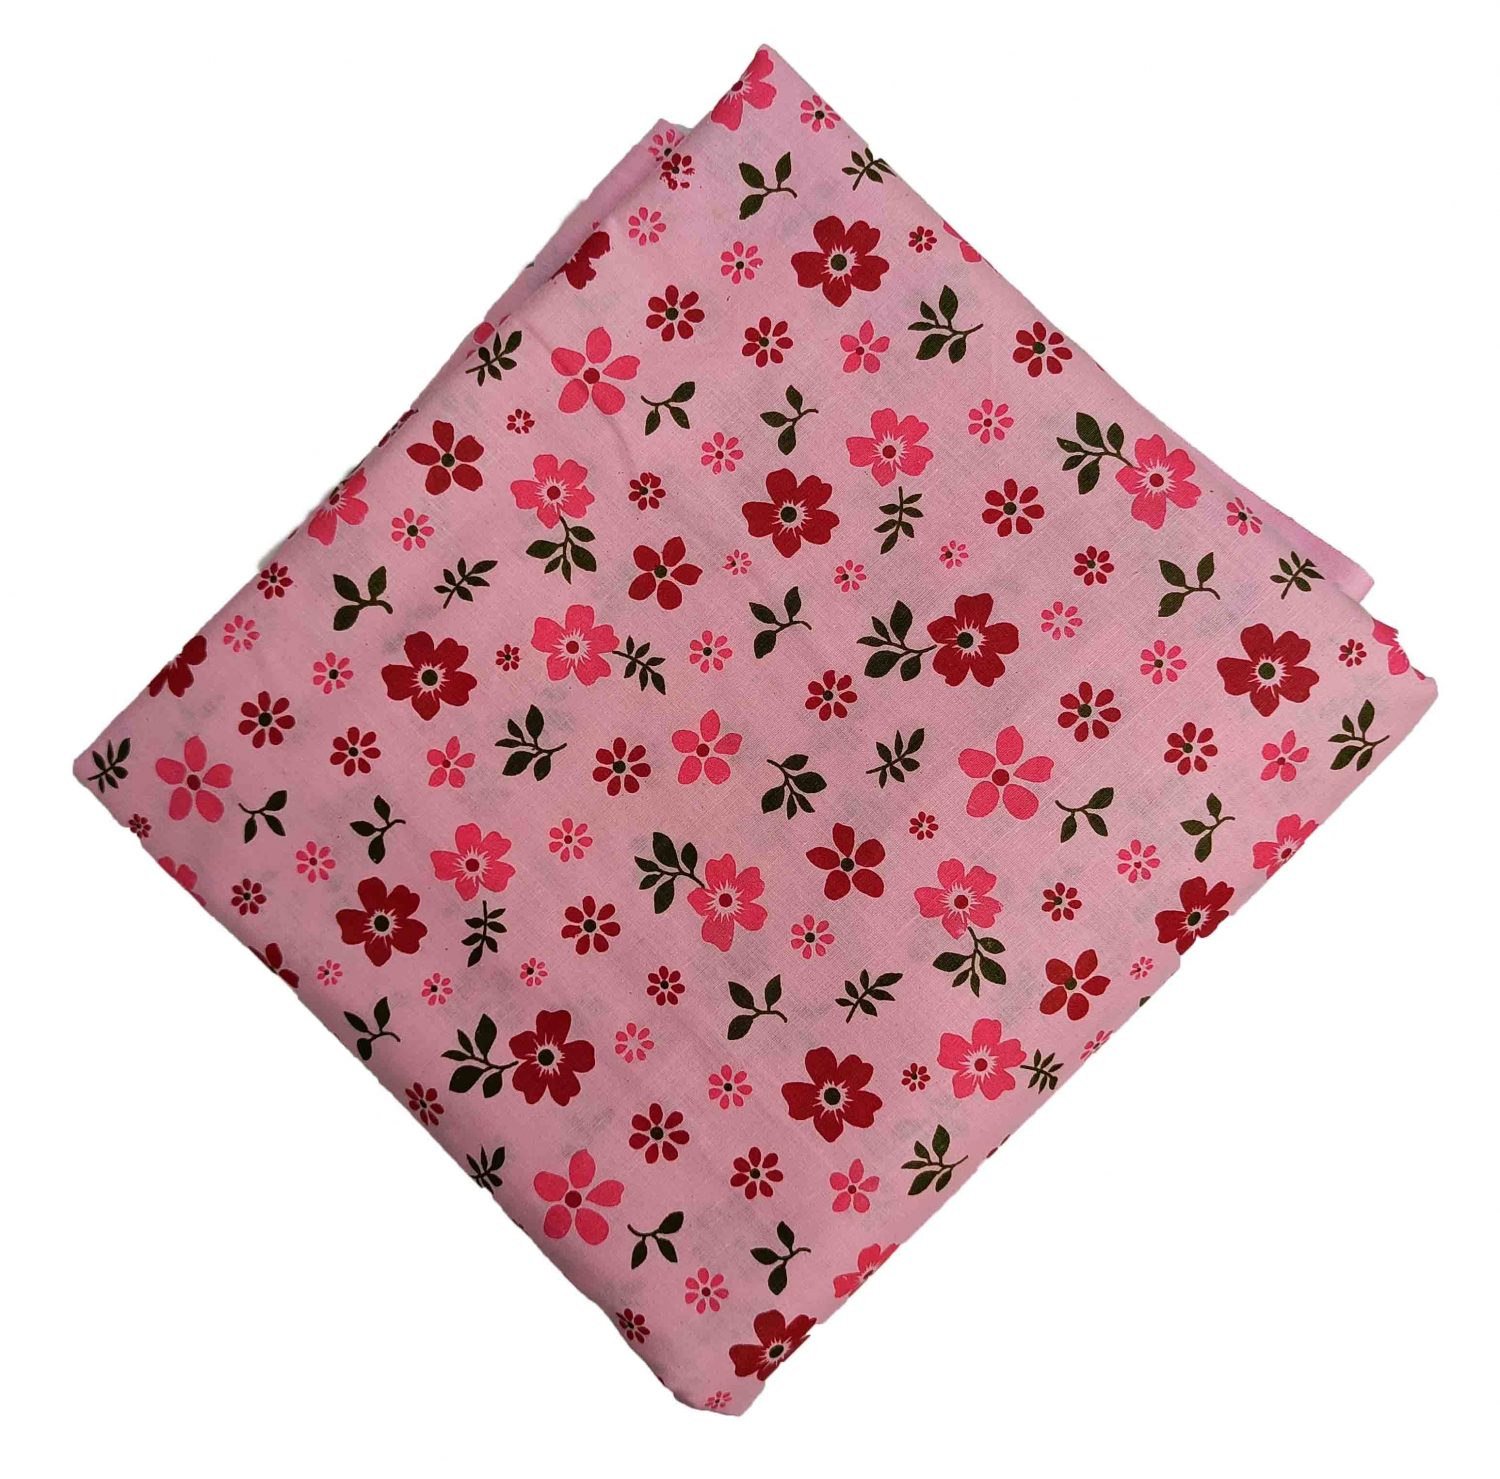 Pink Floral Print Cotton Fabric PC563 1